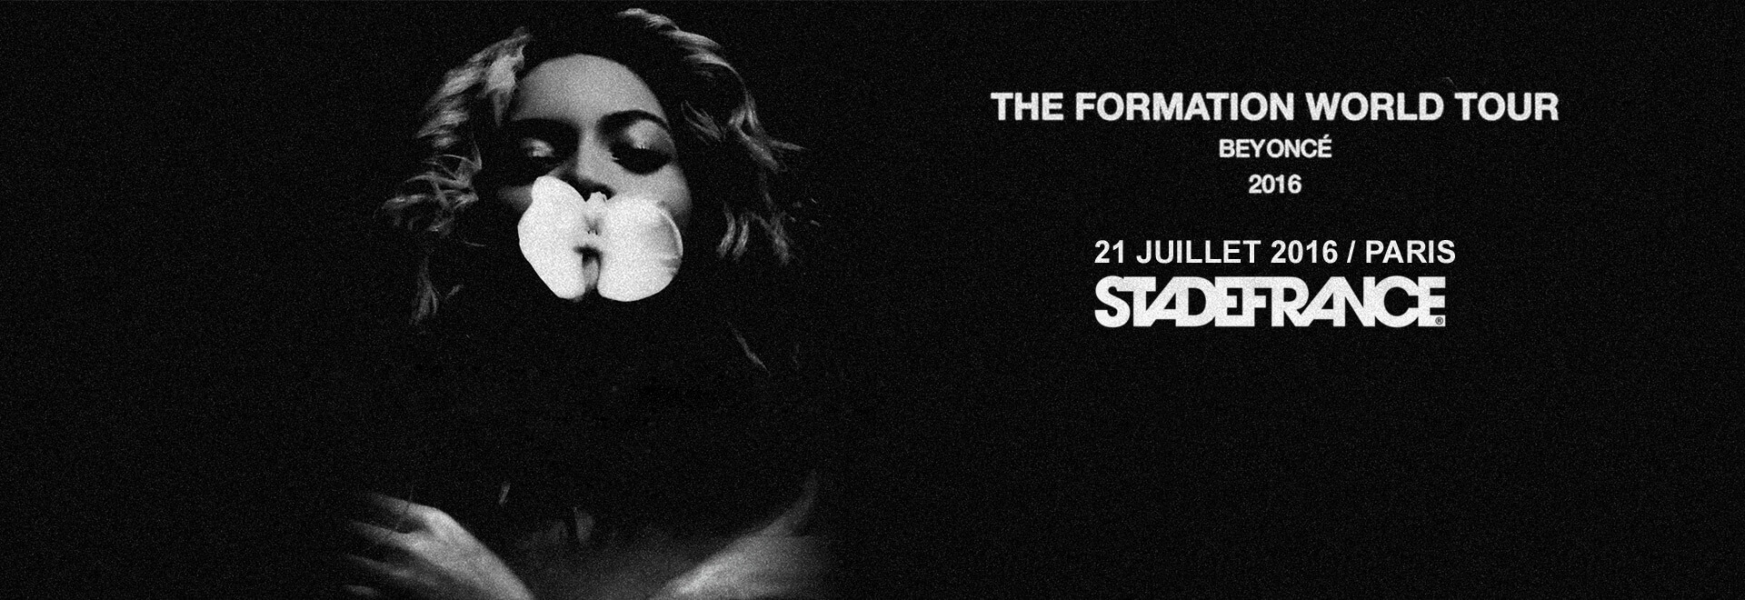 BEYONCE - The Formation World Tour le samedi 21 juillet au Stade de France